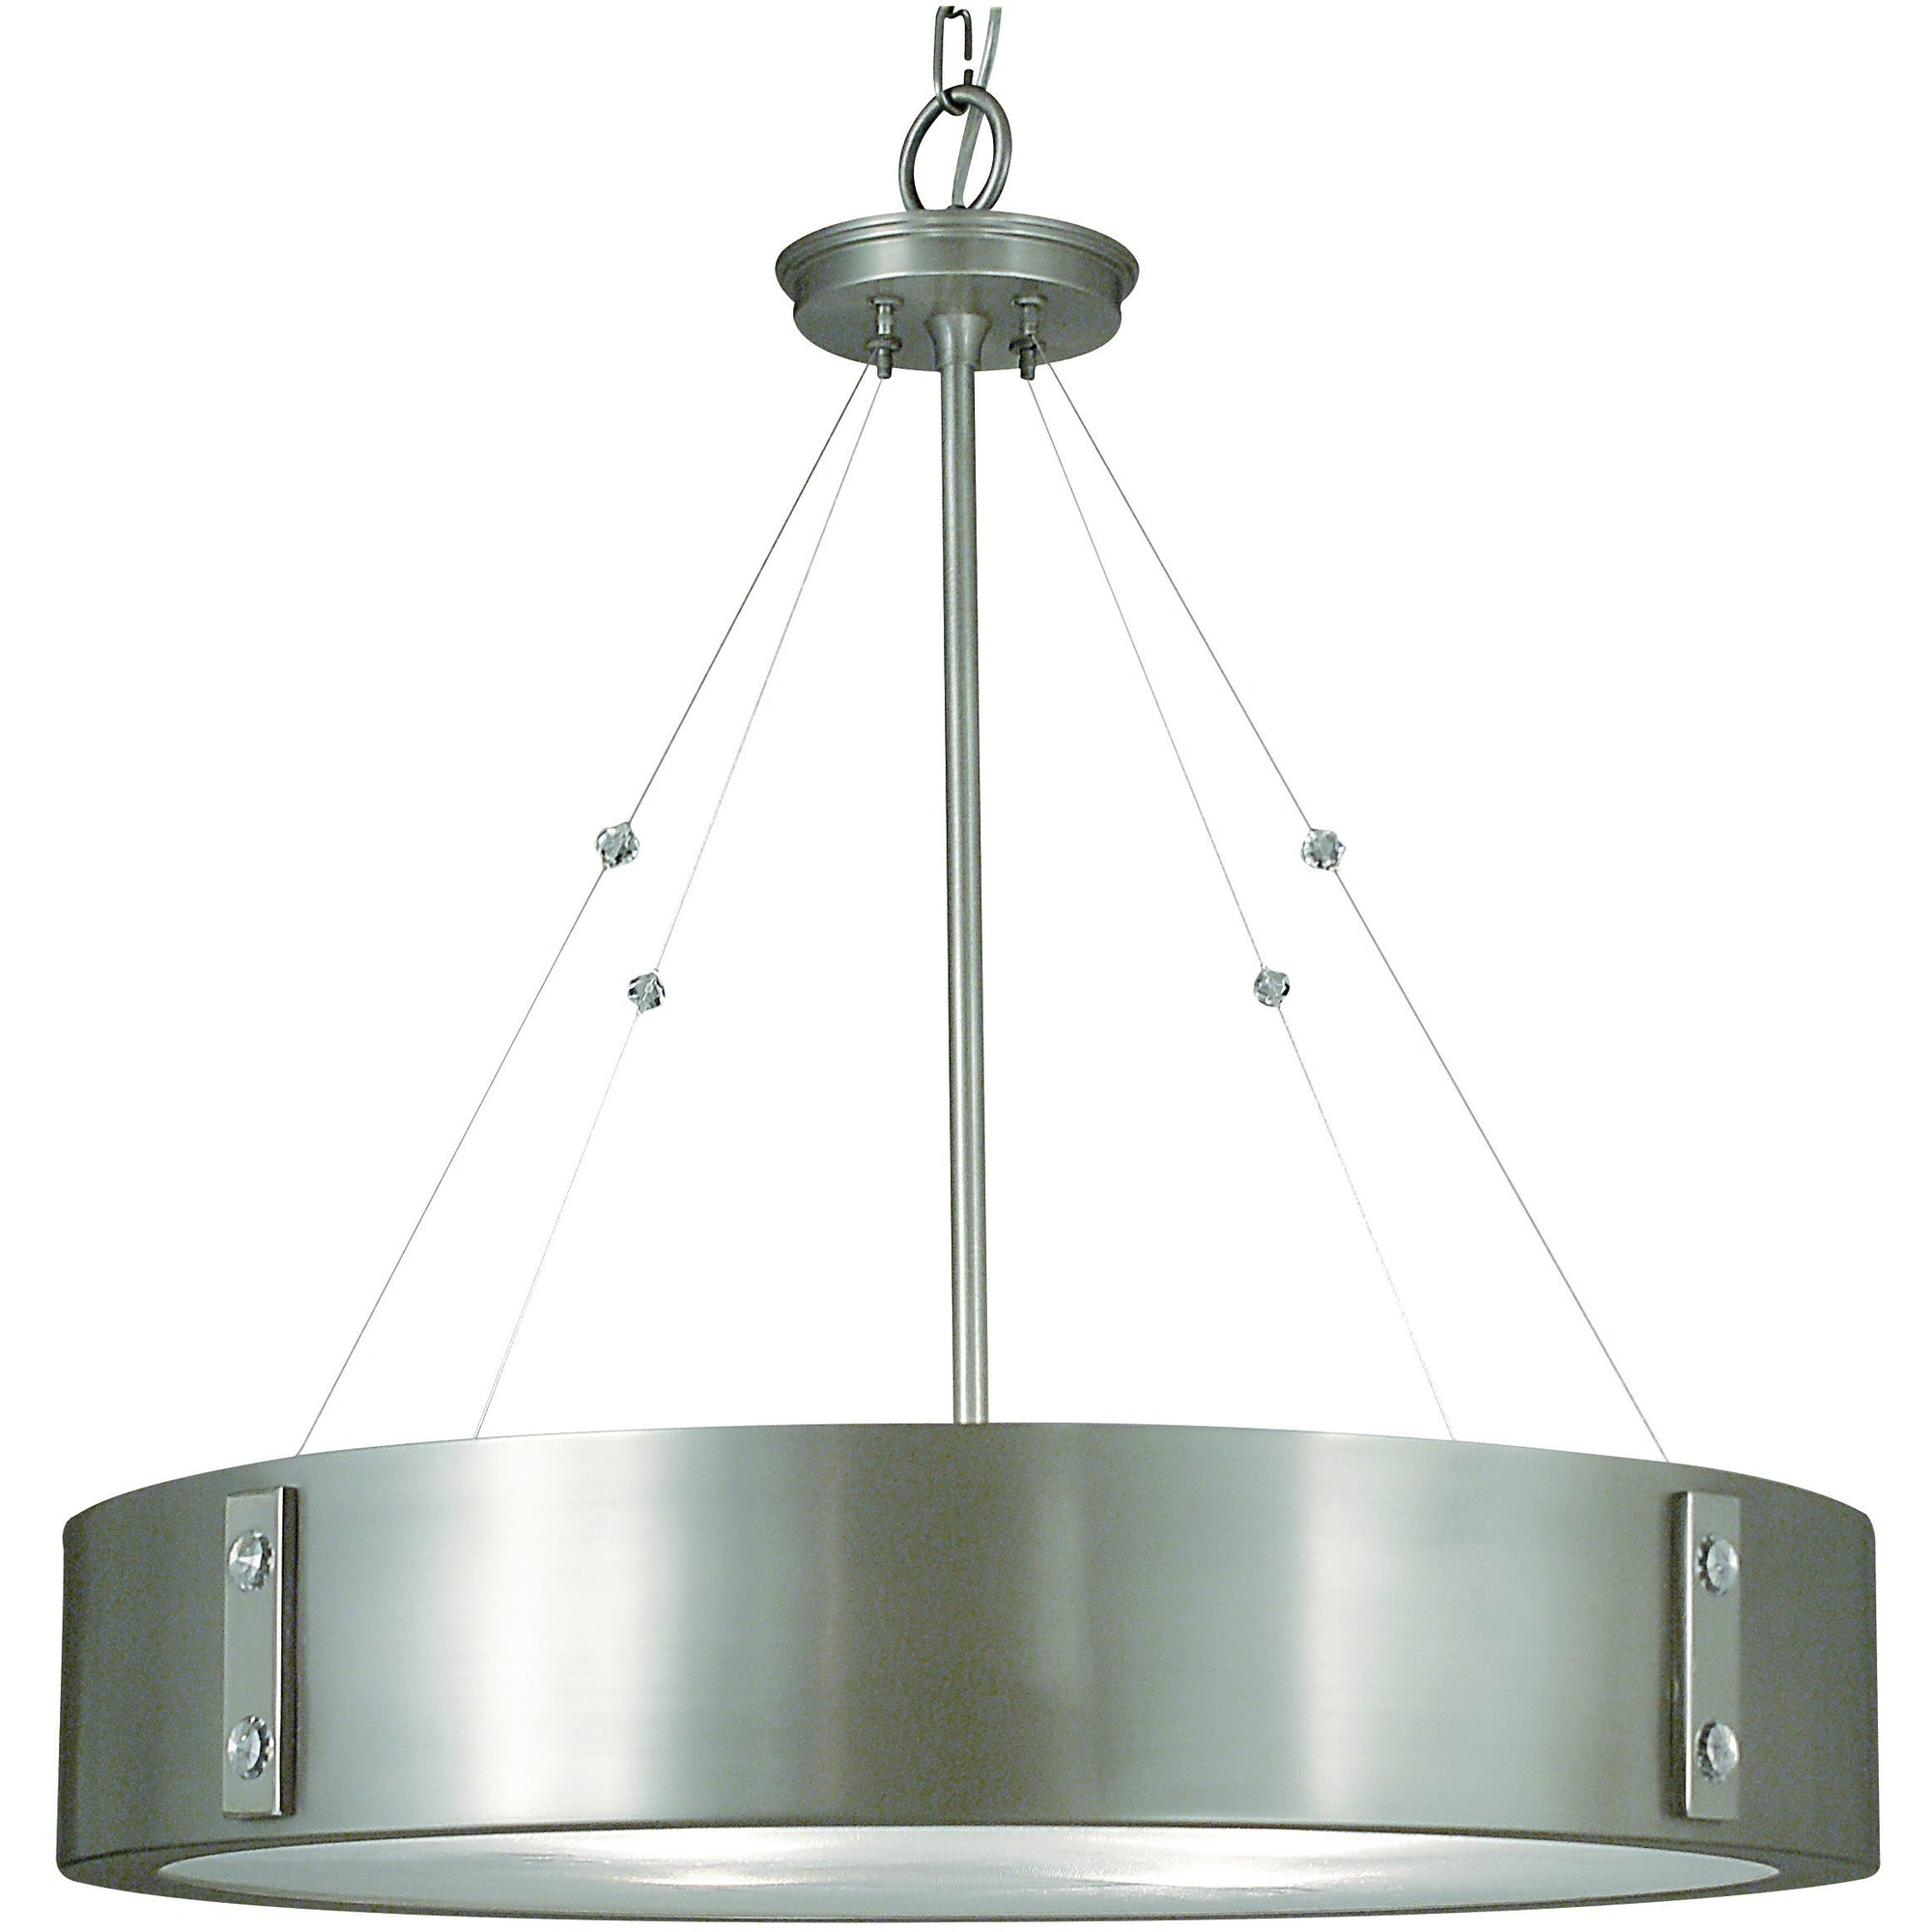 Framburg Chandeliers Satin Pewter with Polished Nickel Accents 4-Light Satin Pewter/Polished Nickel Oracle Dining Chandelier by Framburg 5395